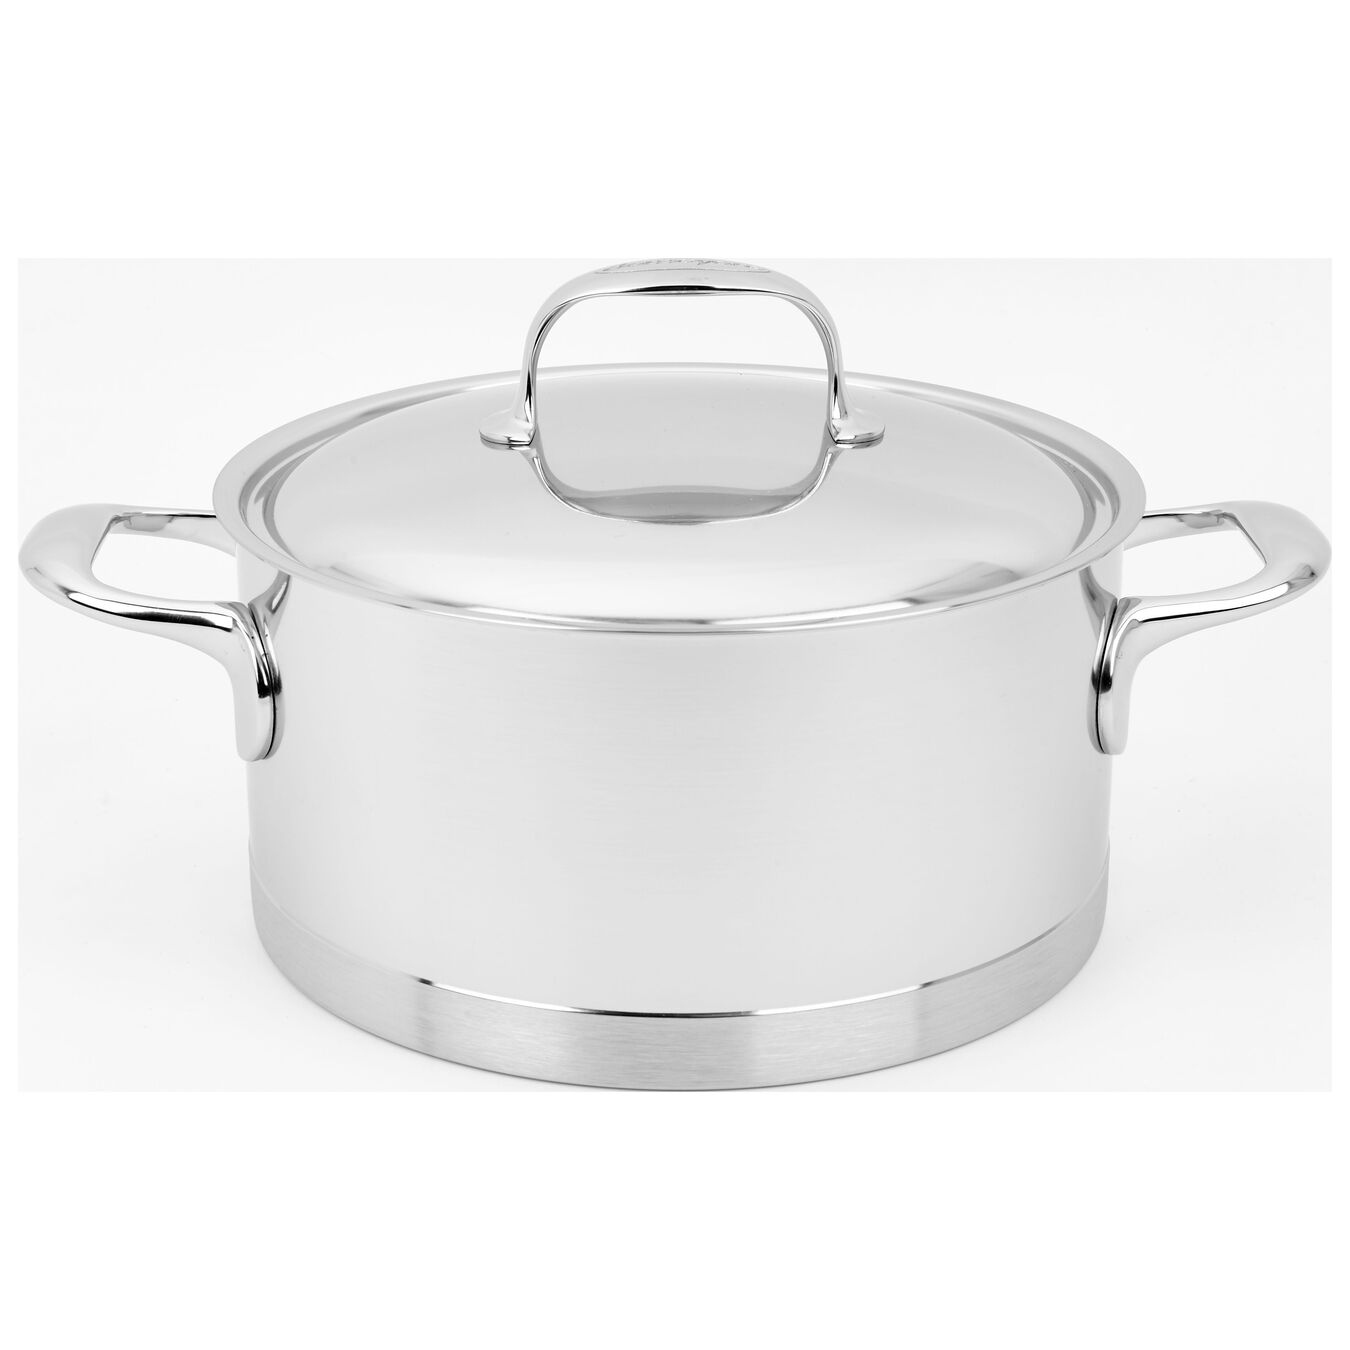 4 l 18/10 Stainless Steel Stew pot with lid,,large 1